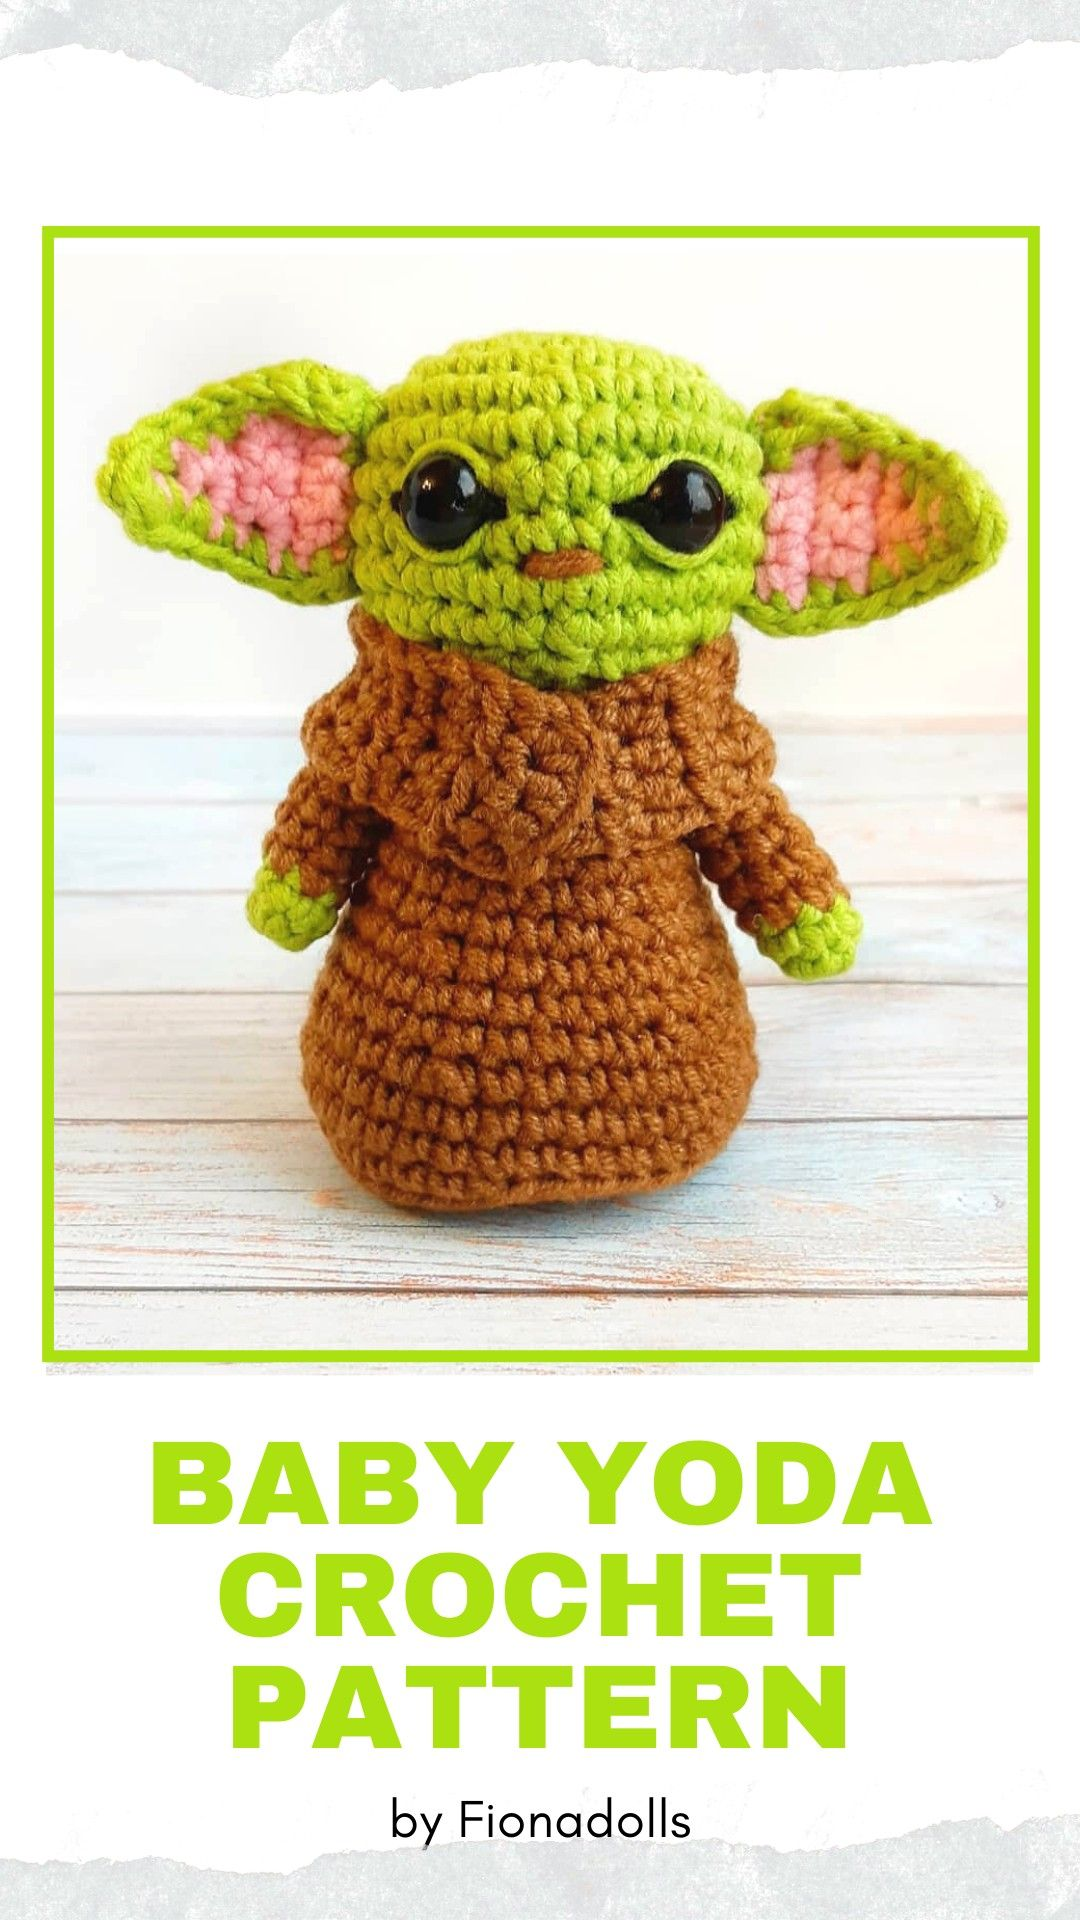 Baby Yoda Amigurumi Crochet Pattern - Cool Creativities | 1920x1080